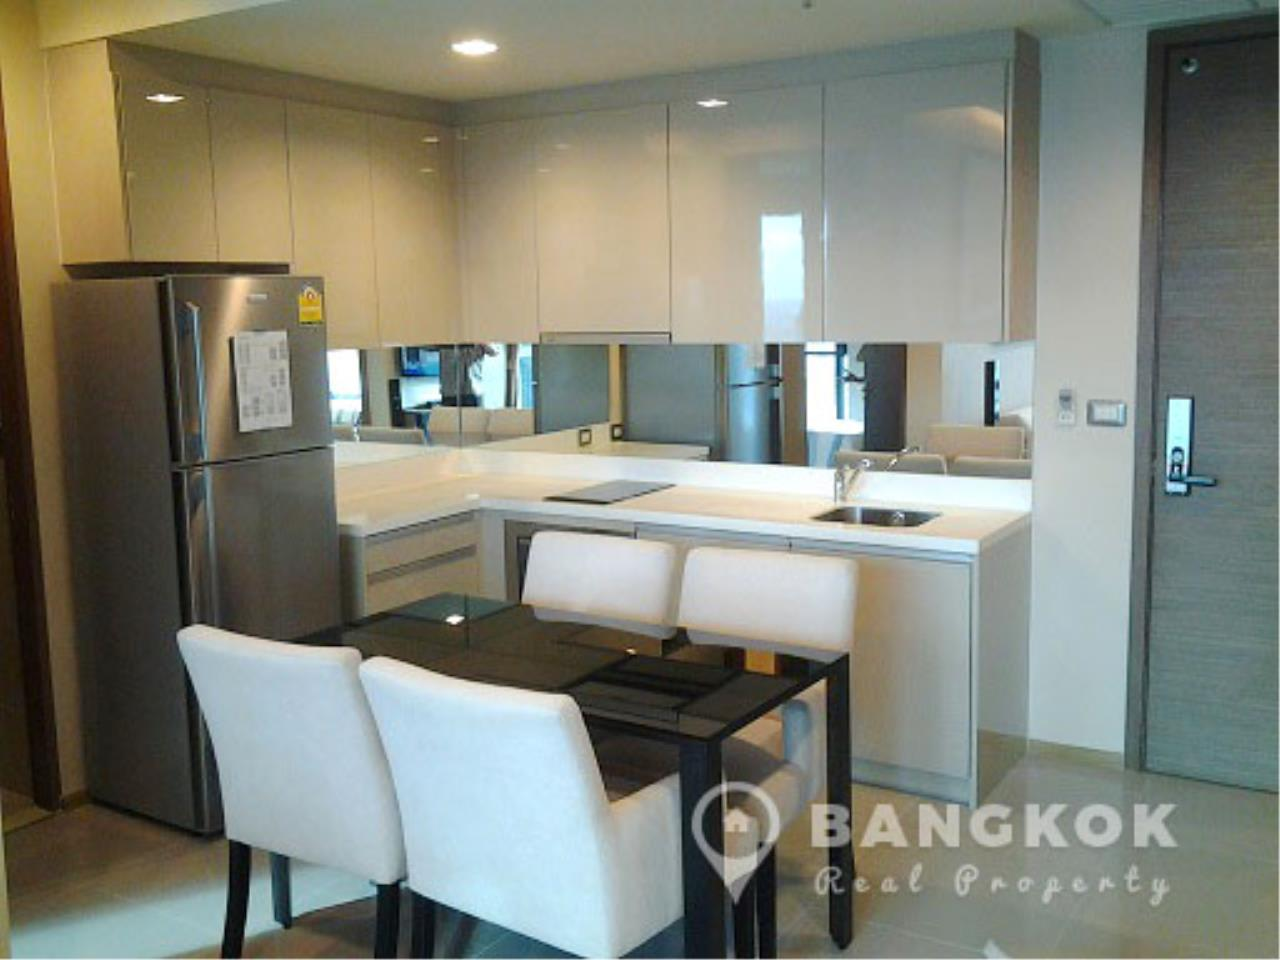 Bangkok Real Property Agency's The Address Sathorn | Stylish High Floor 2 Bed 2 Bath 1